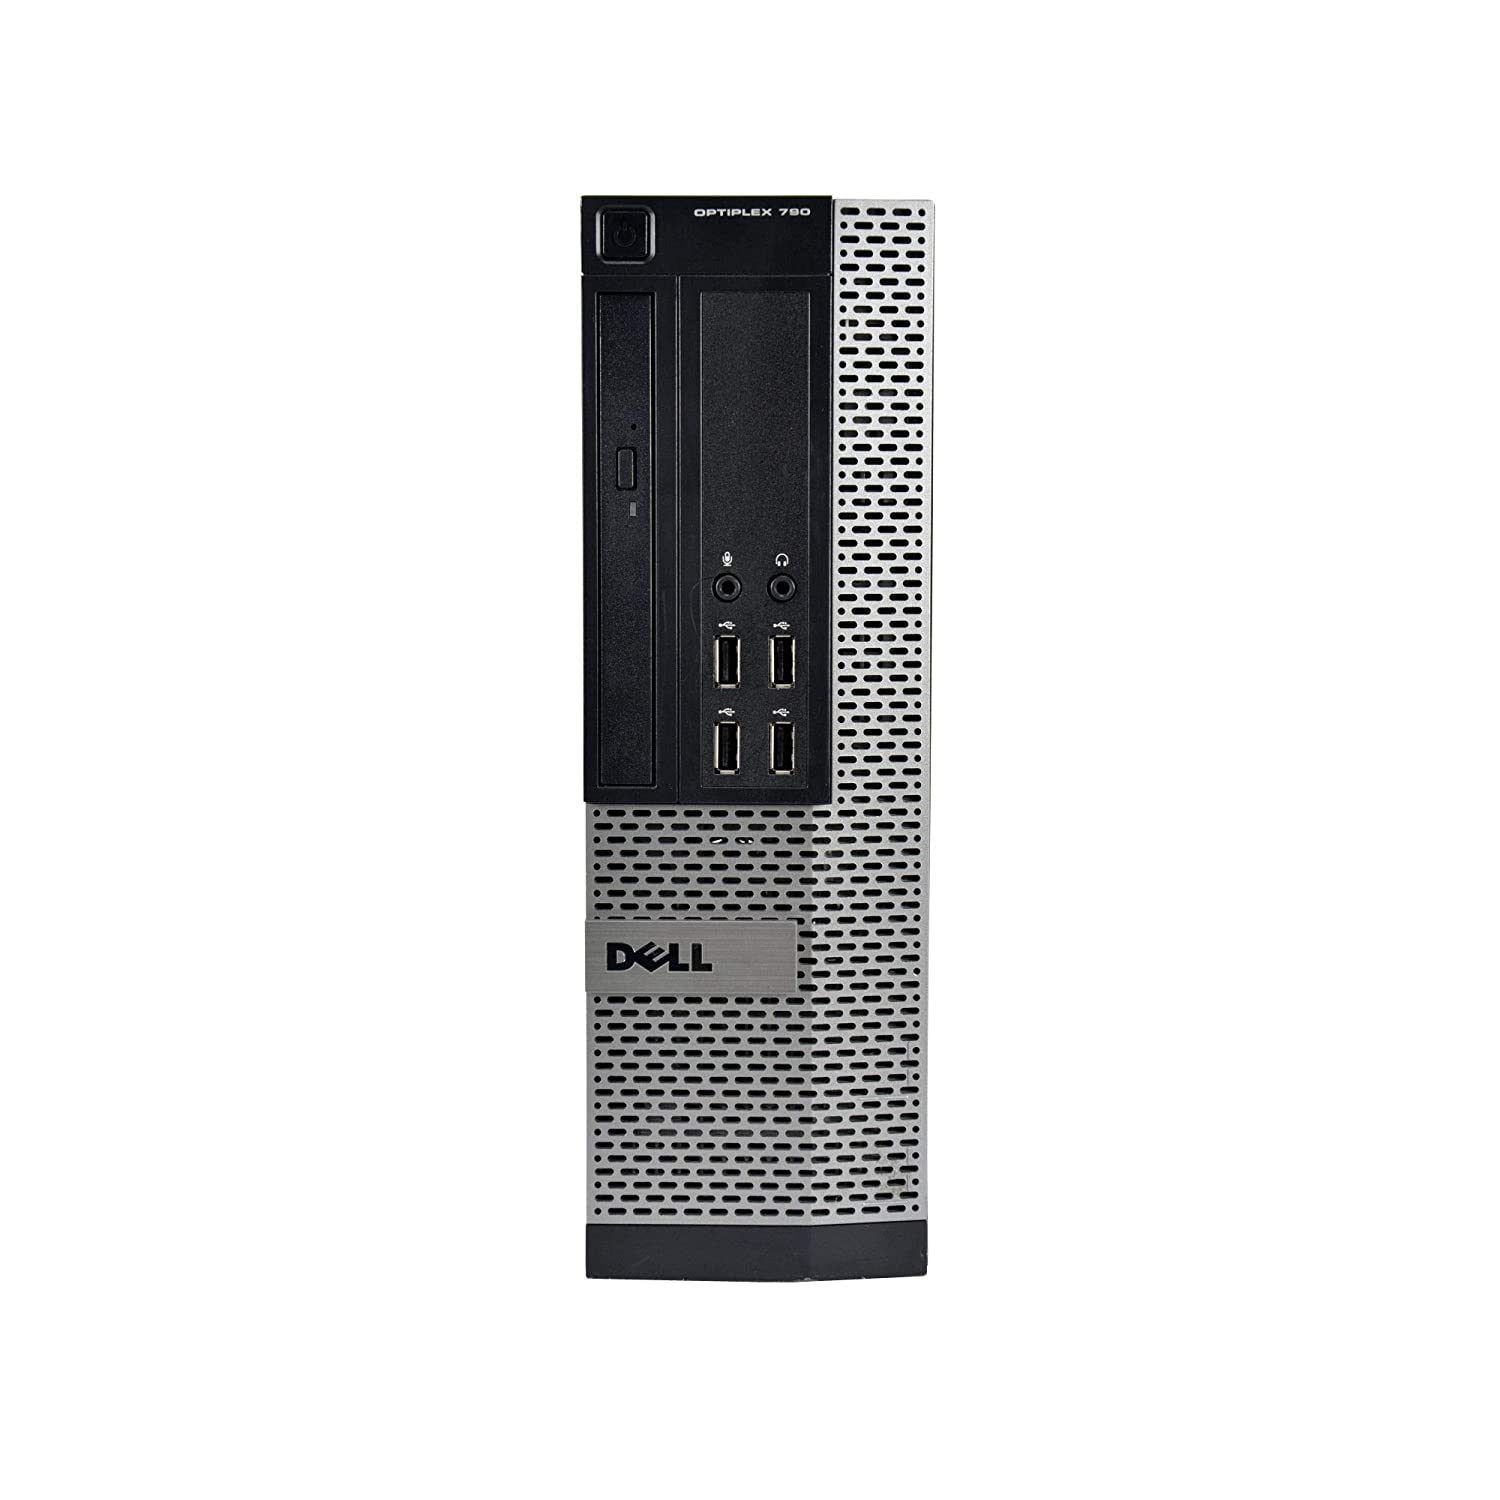 Dell 790 SFF, Core i5-2400 3.1GHz, 8GB RAM, 500GB Hard Drive, DVDRW, Windows 10 Pro 64bit (Renewed)